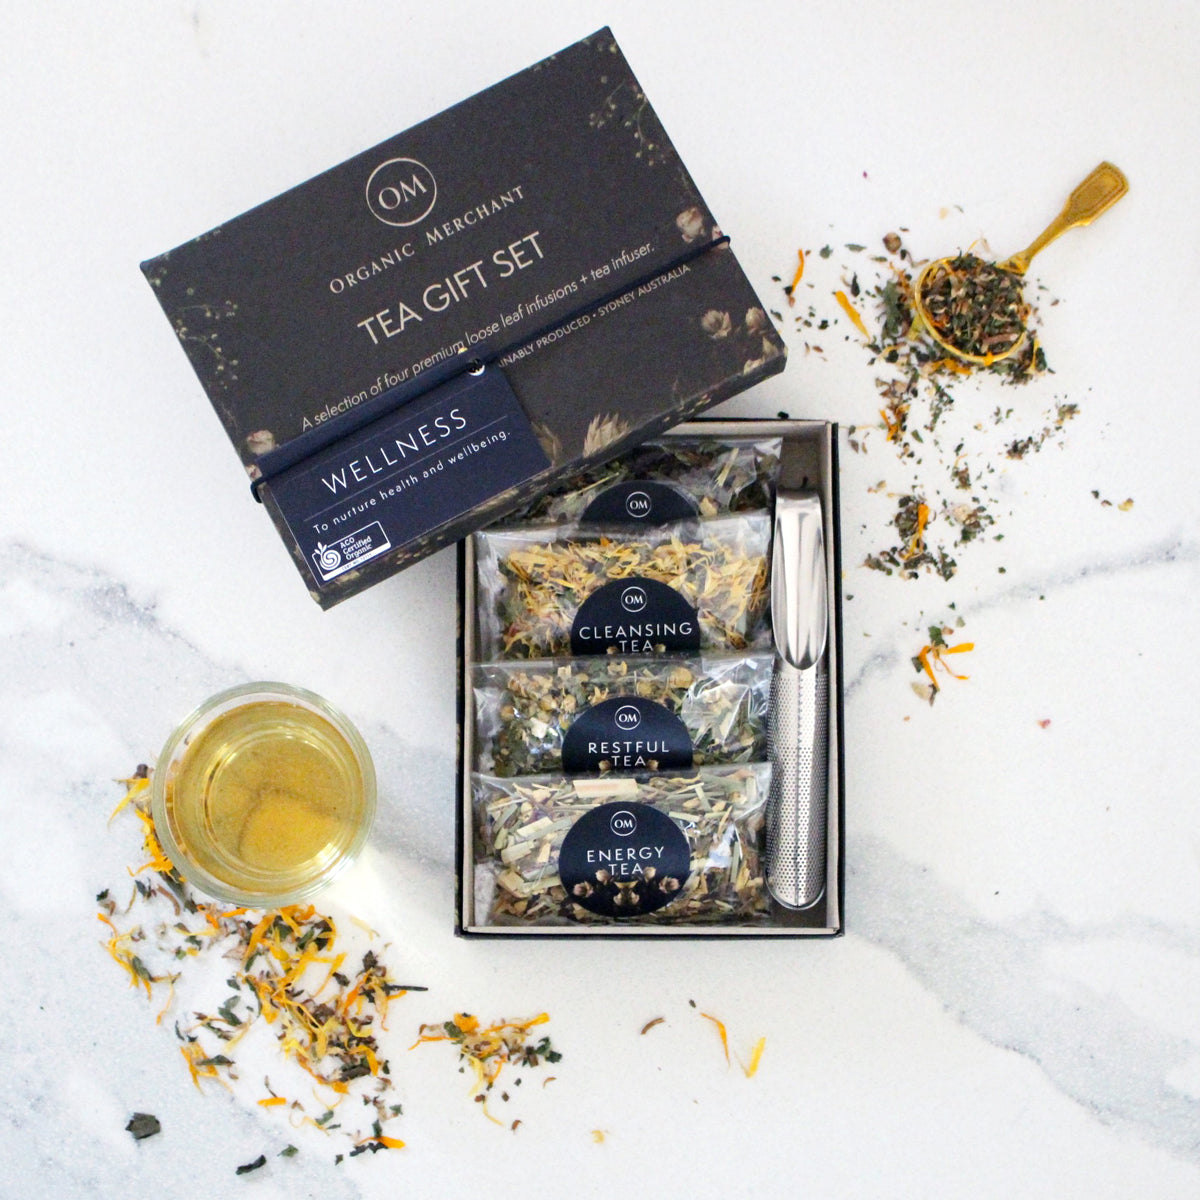 The Swirl Box Wellness Tea Gift Set - Loose Leaf and Certified Organic, comes in a Gift pack with Tea Infuser